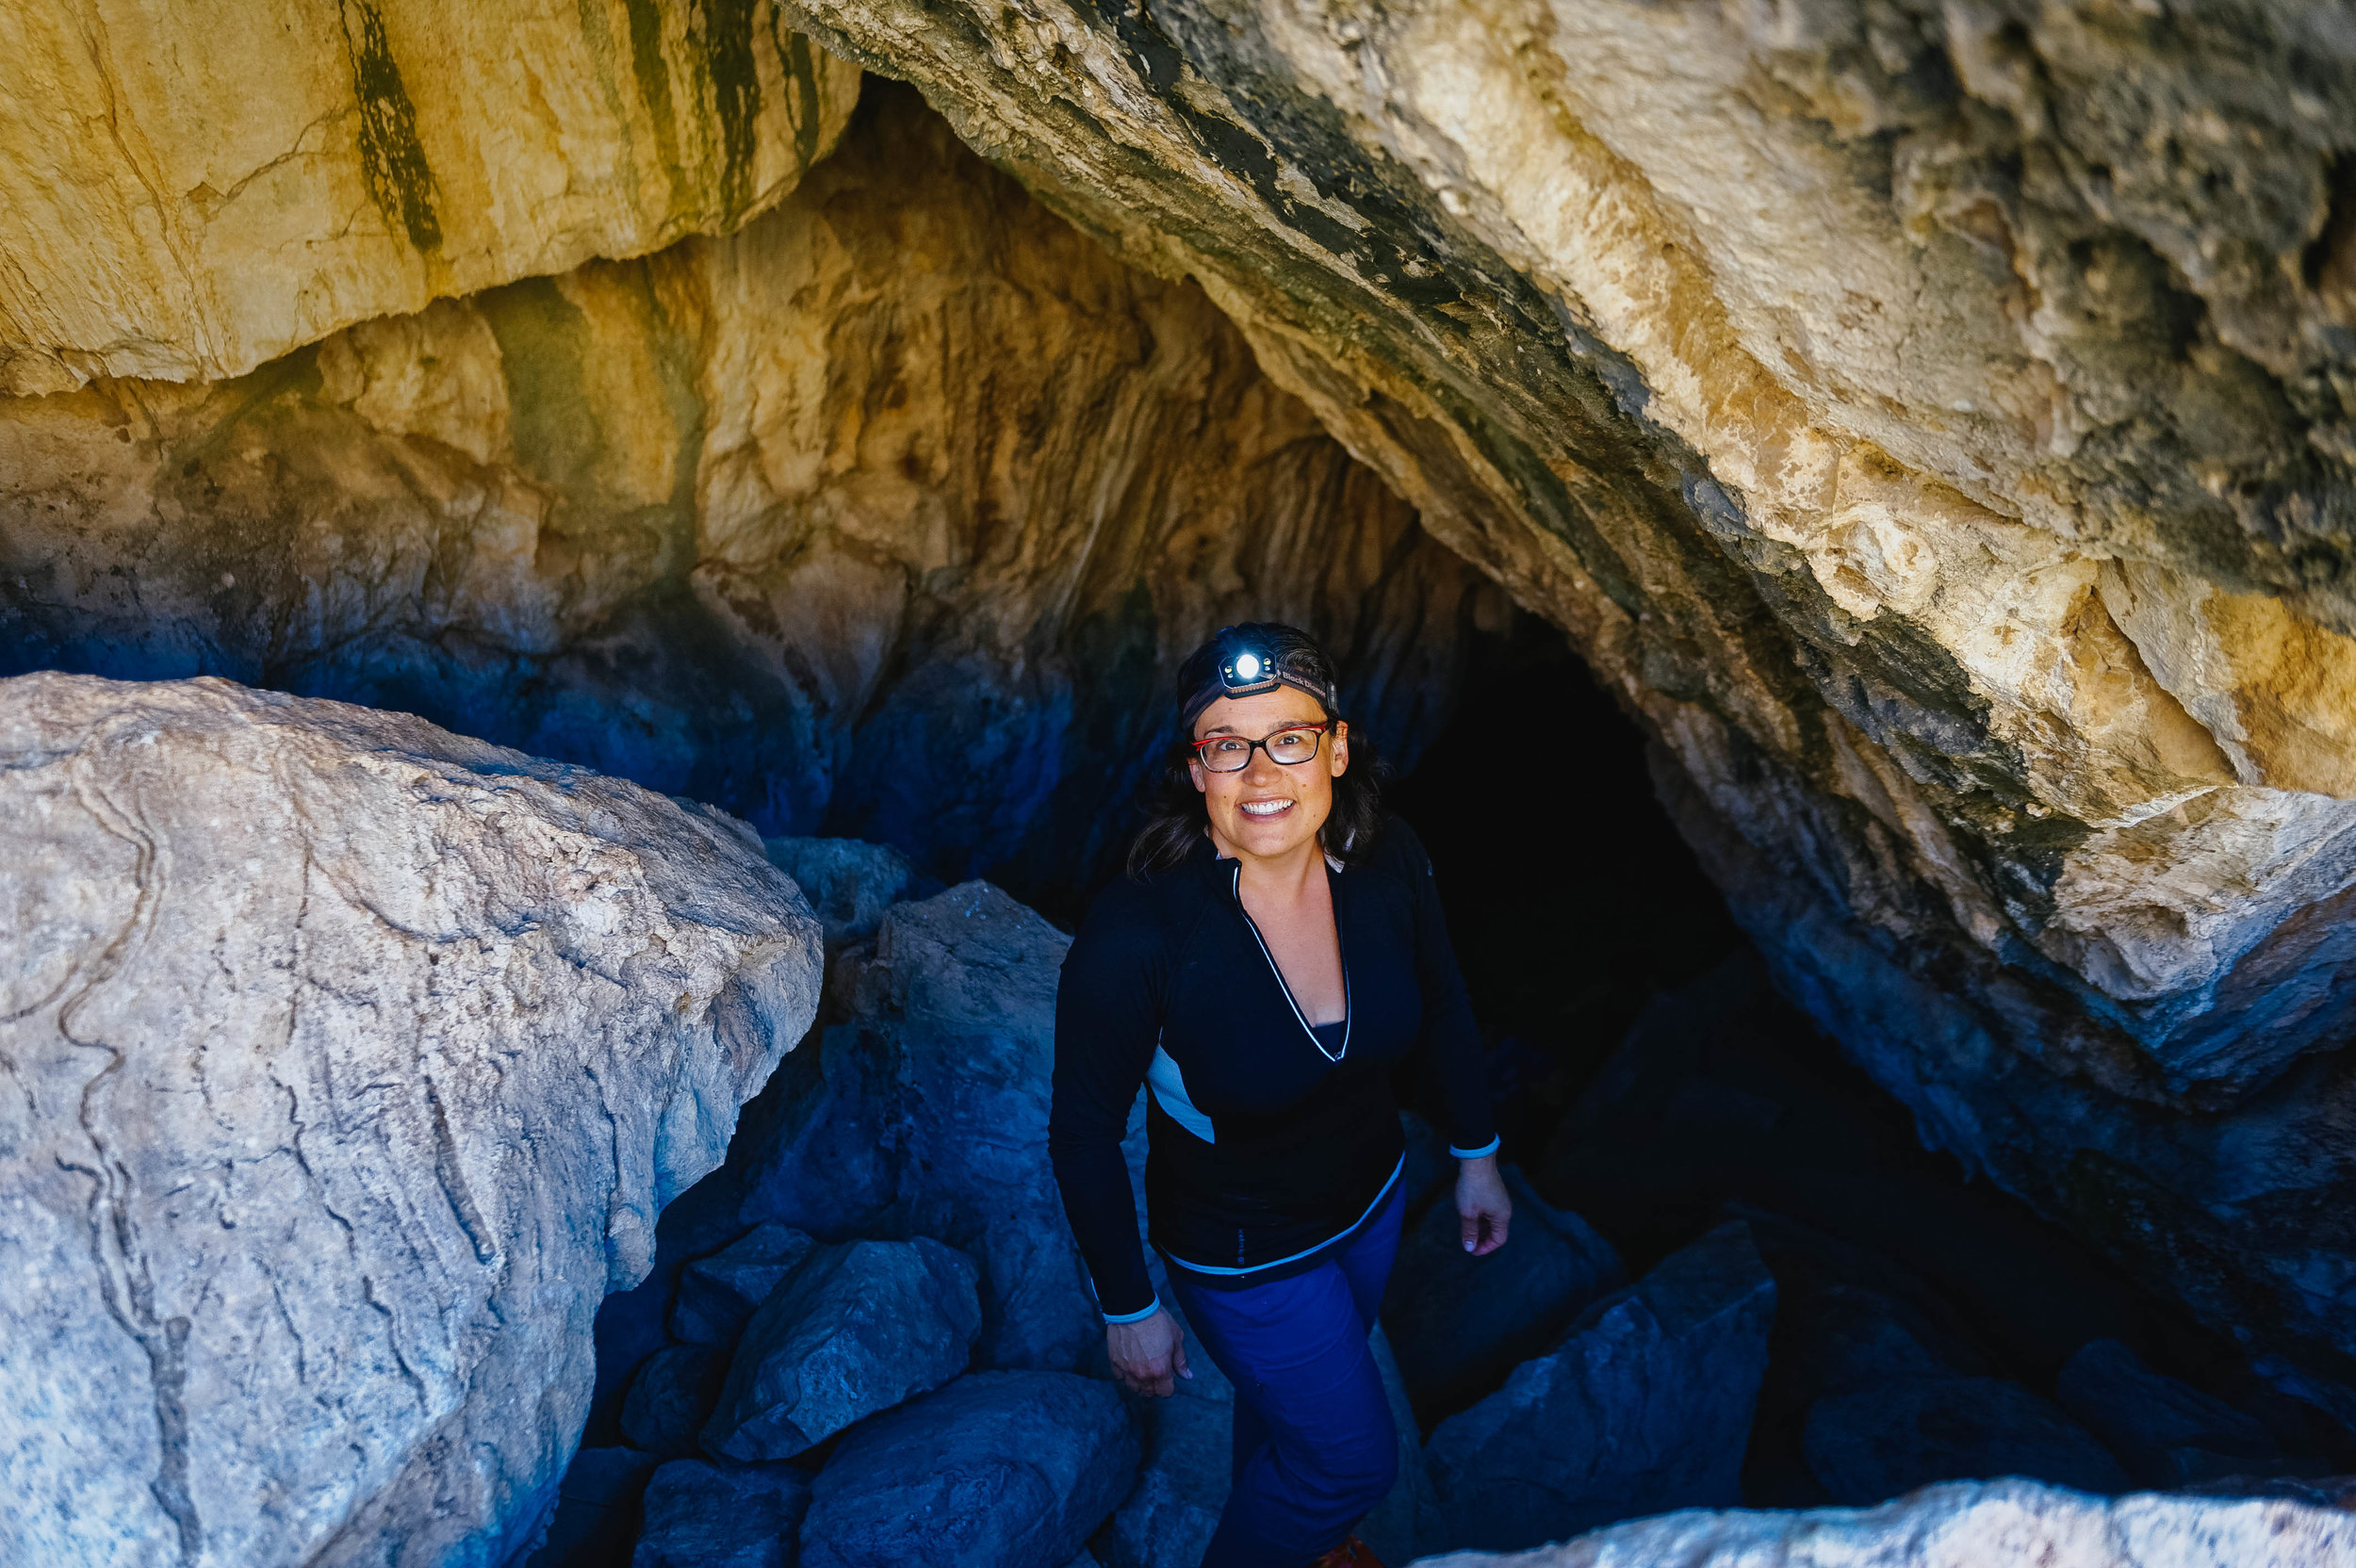 We went to explore the  Coronado Cave , one of the biggest unimproved cave in AZ. It's a half mile uphill hike to the cave. I highly recommend you check it out!